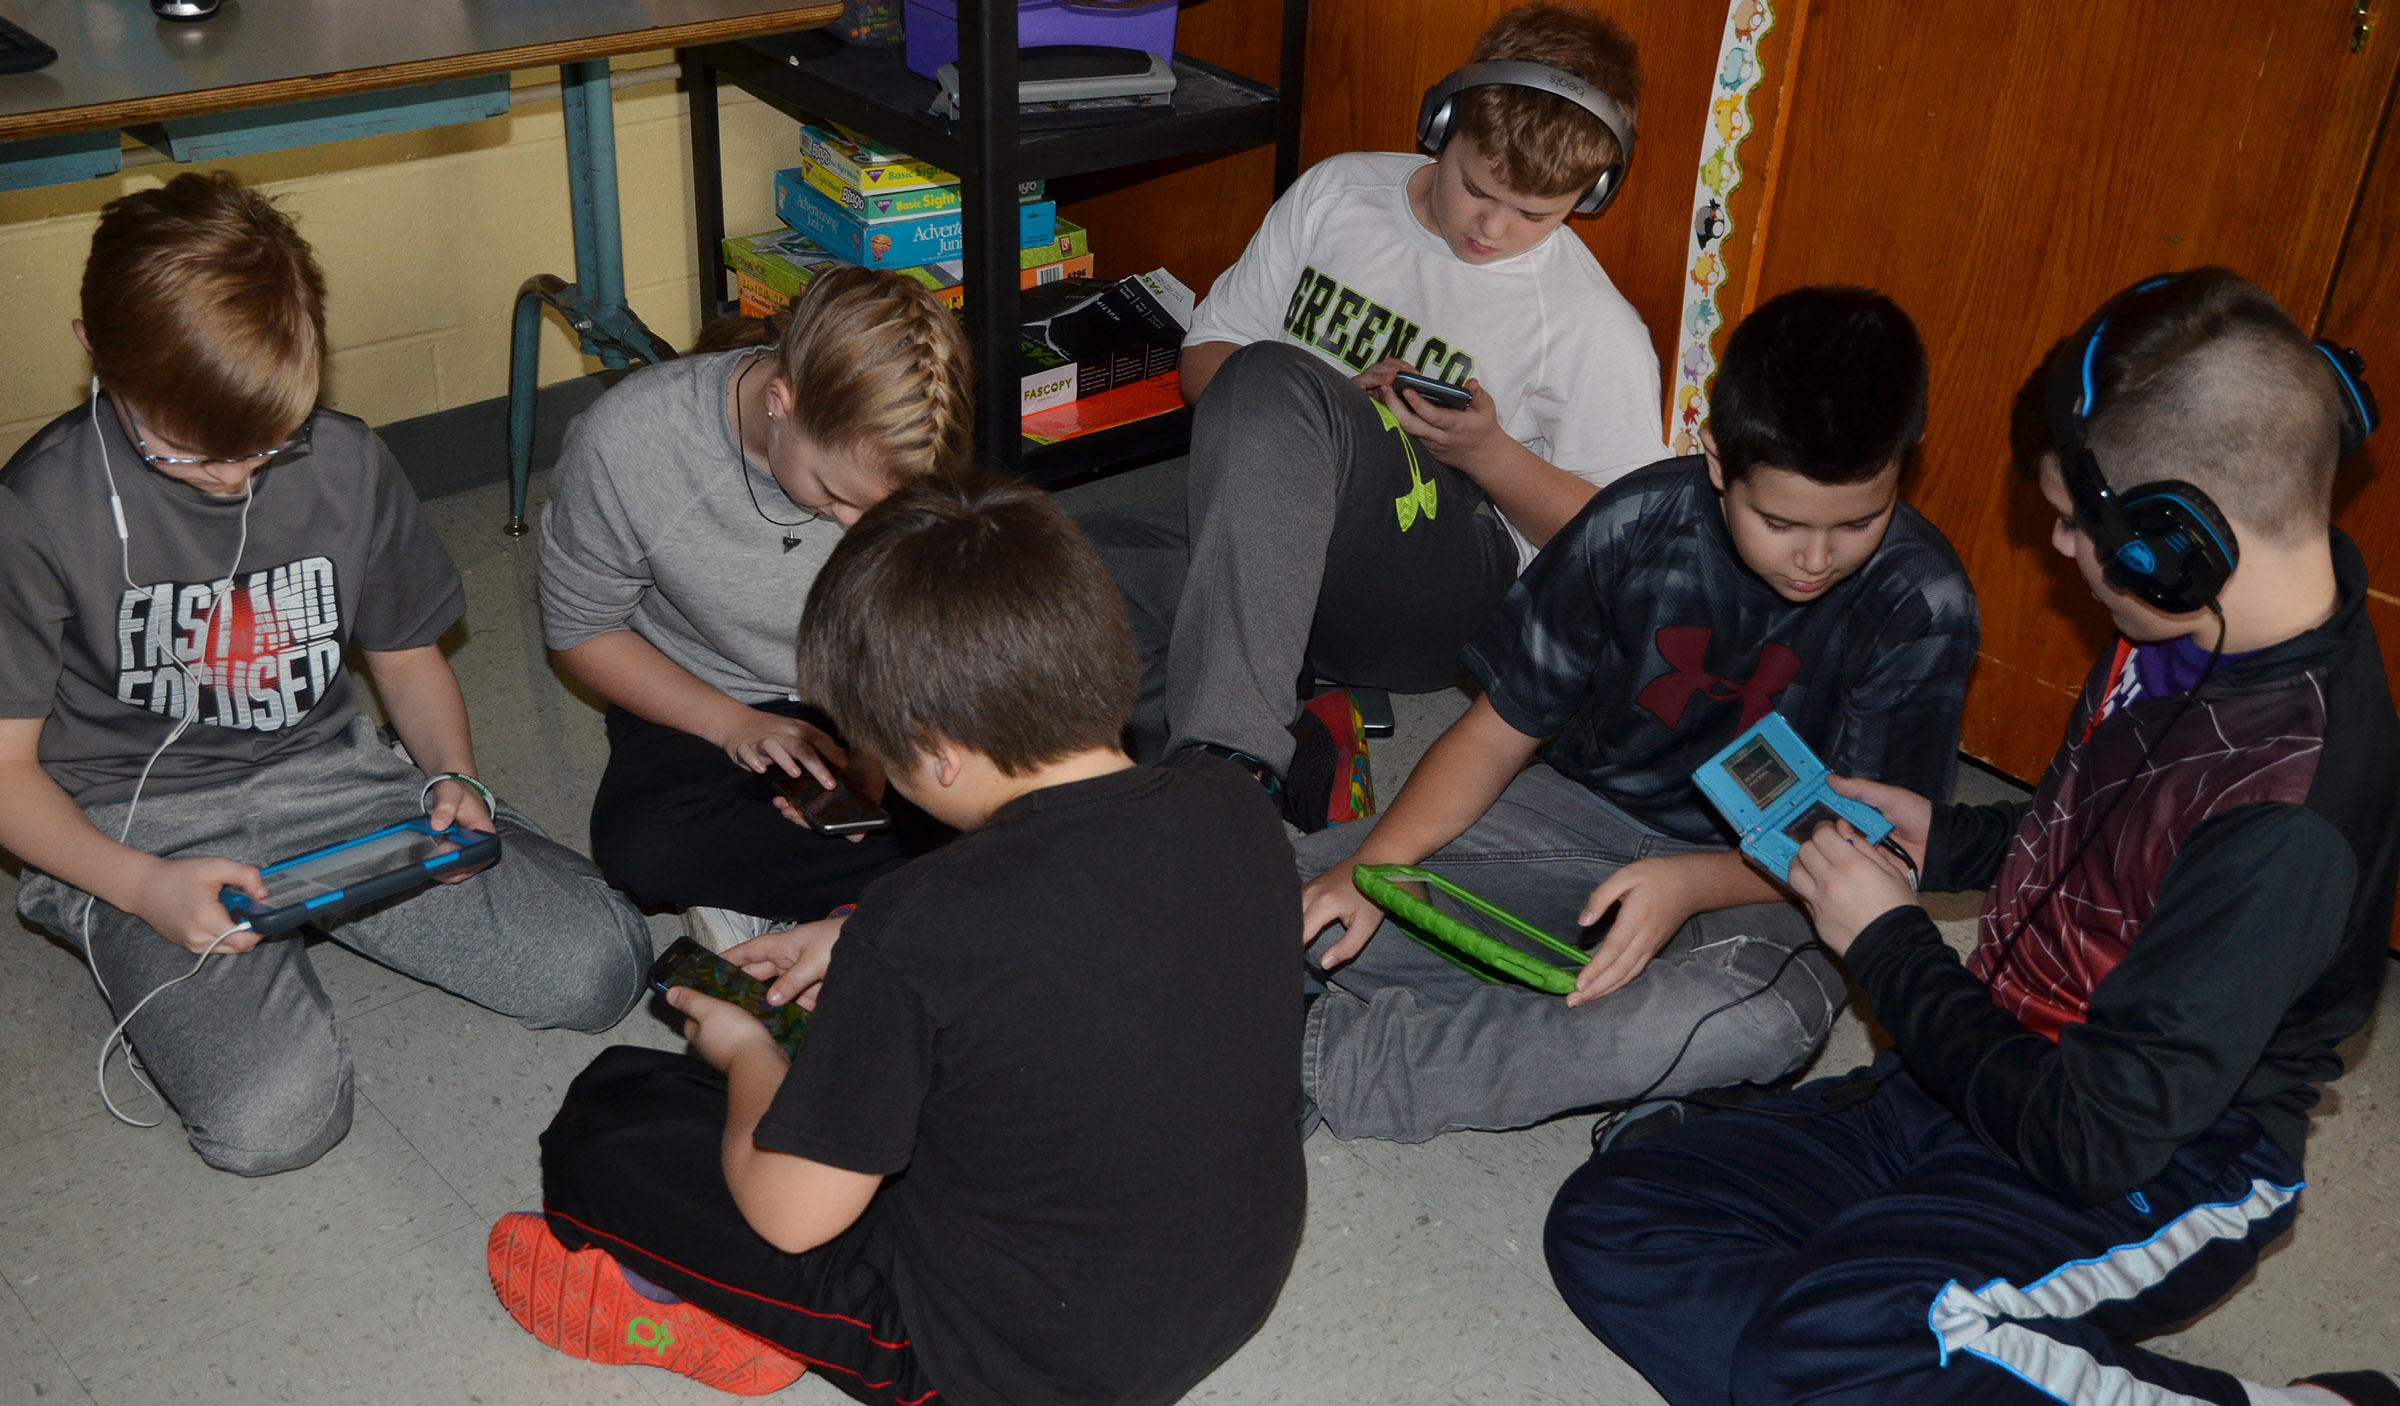 CMS students enjoy electronic device time together.